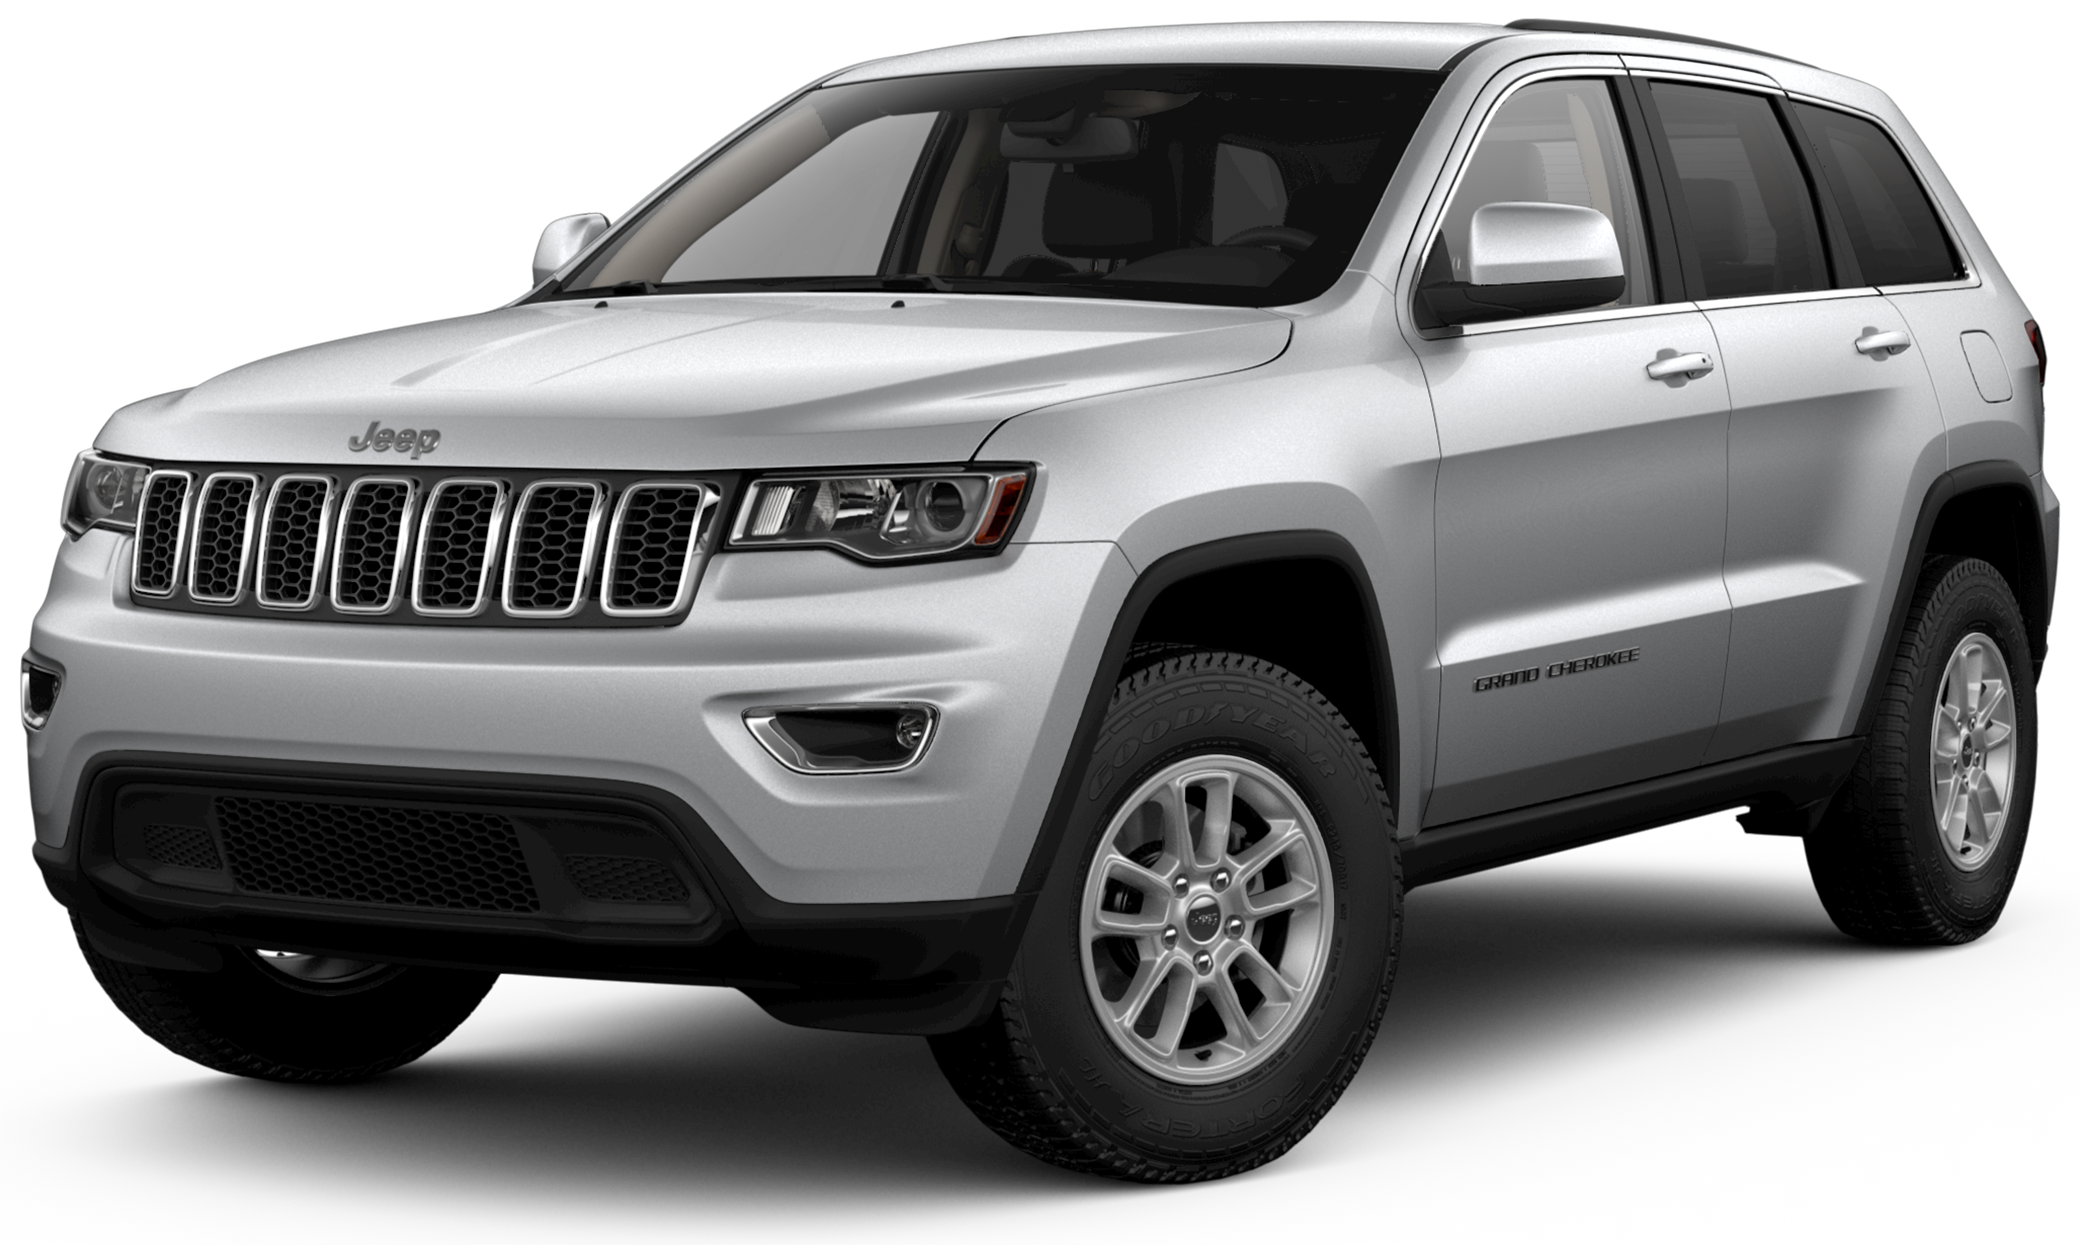 56 Concept of 2019 Jeep Incentives Pricing by 2019 Jeep Incentives